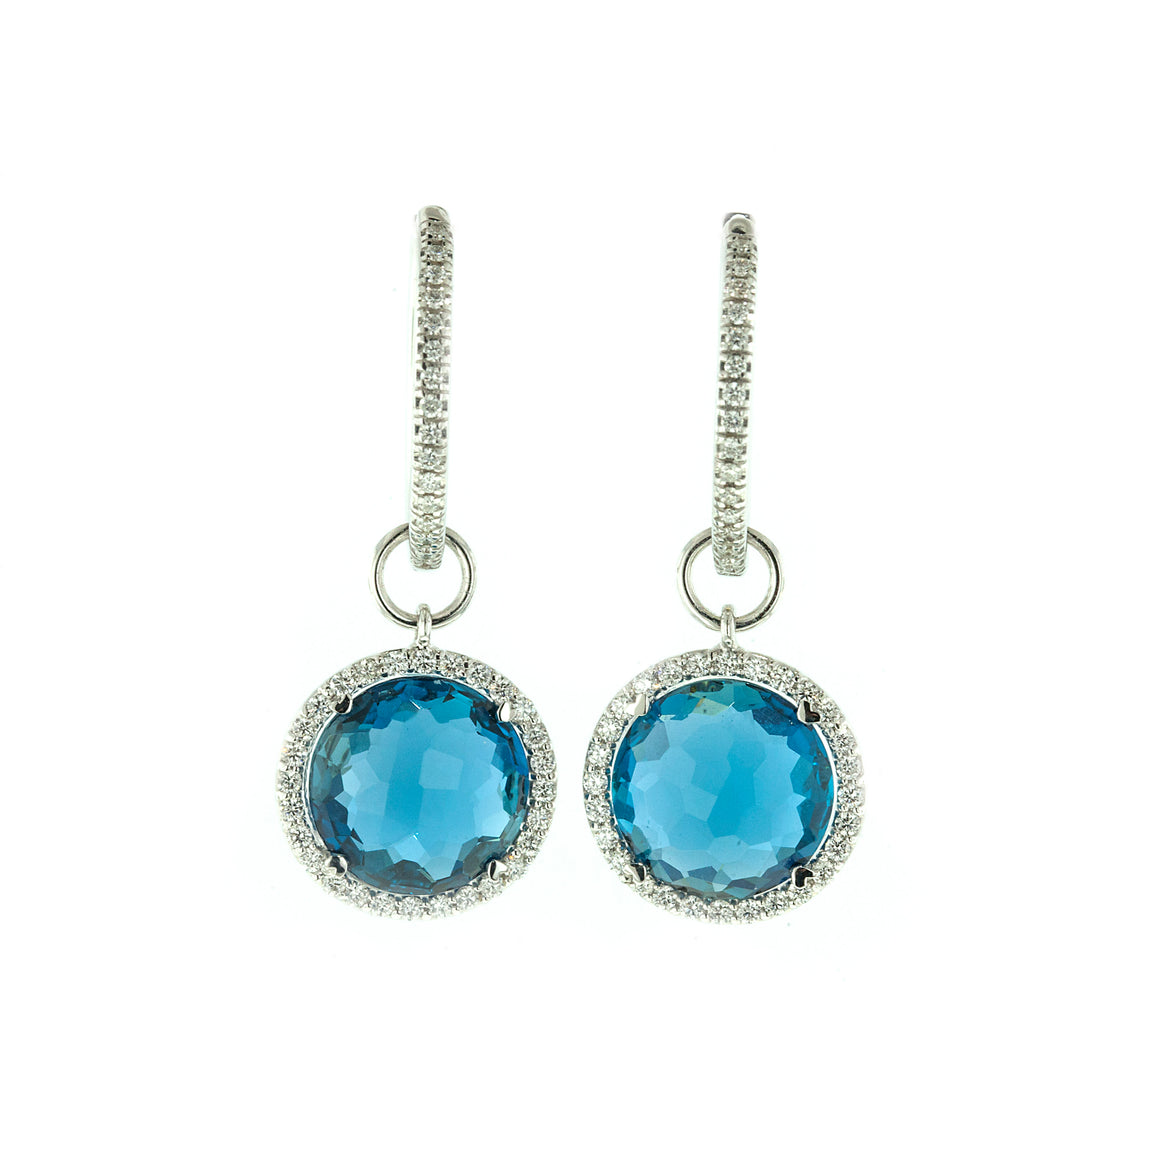 London Blue Topaz and Diamond Drop Earrings by Lisa Nik - Talisman Collection Fine Jewelers